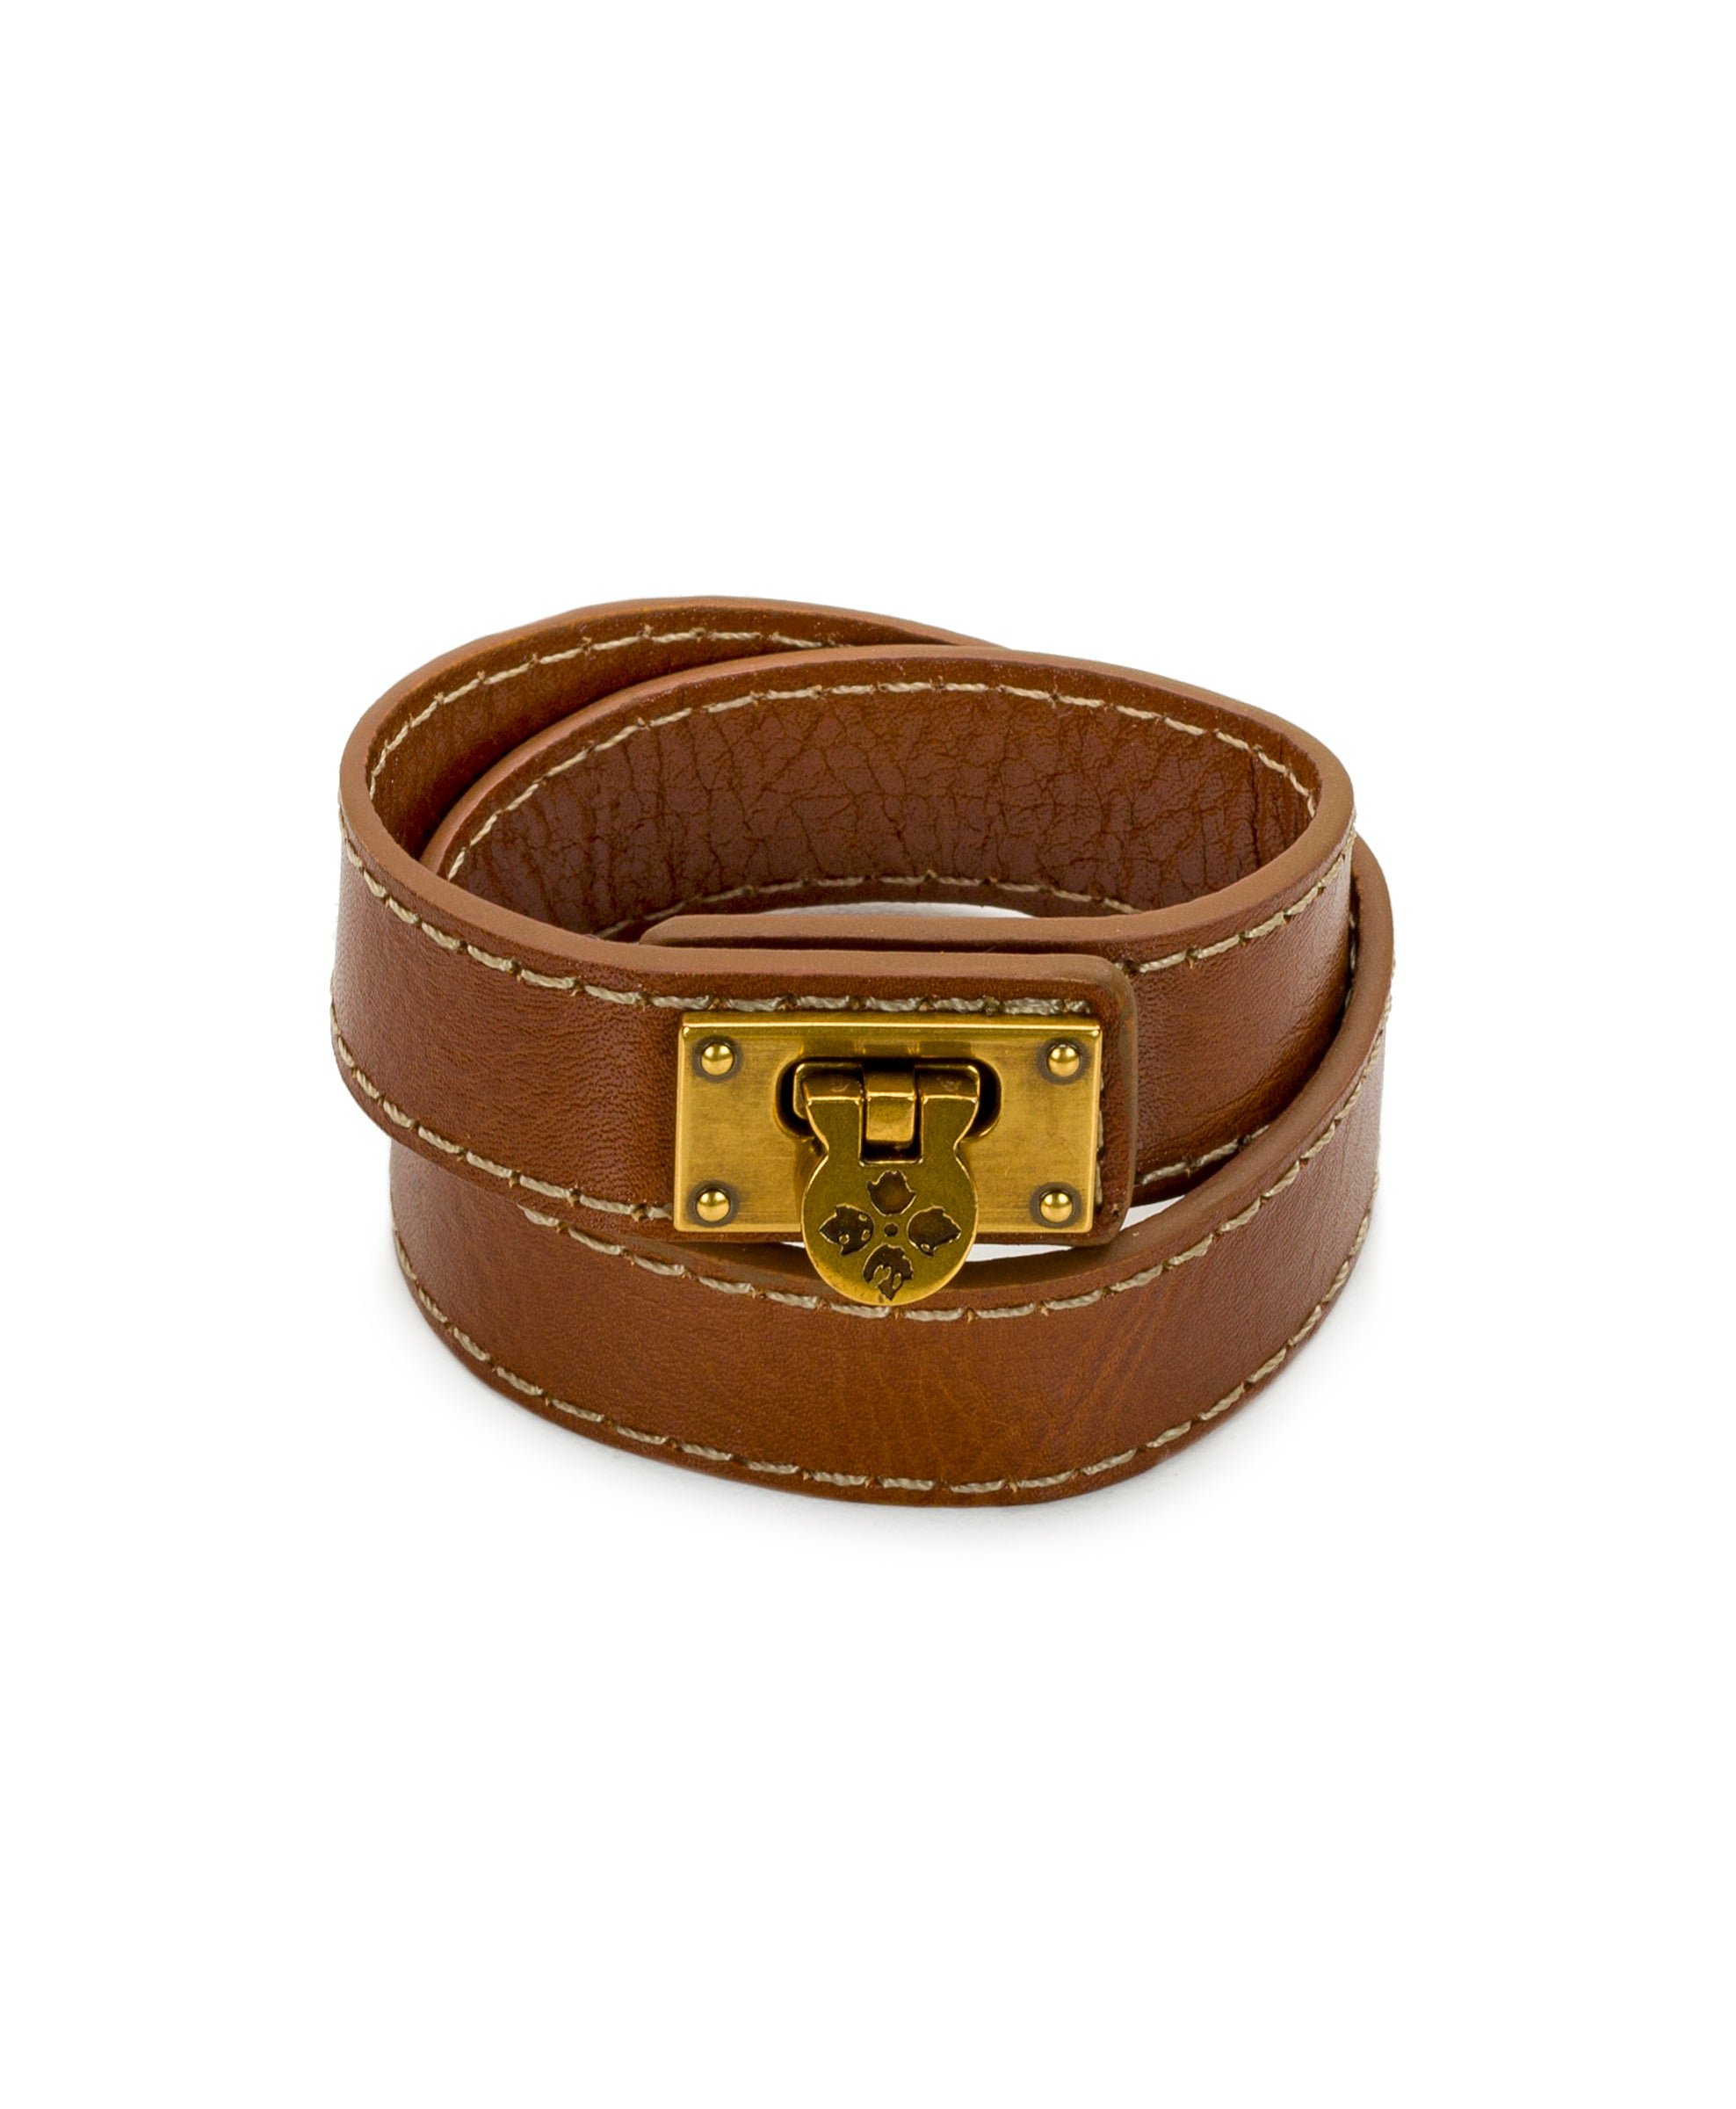 Rose Tan Leather Cuff